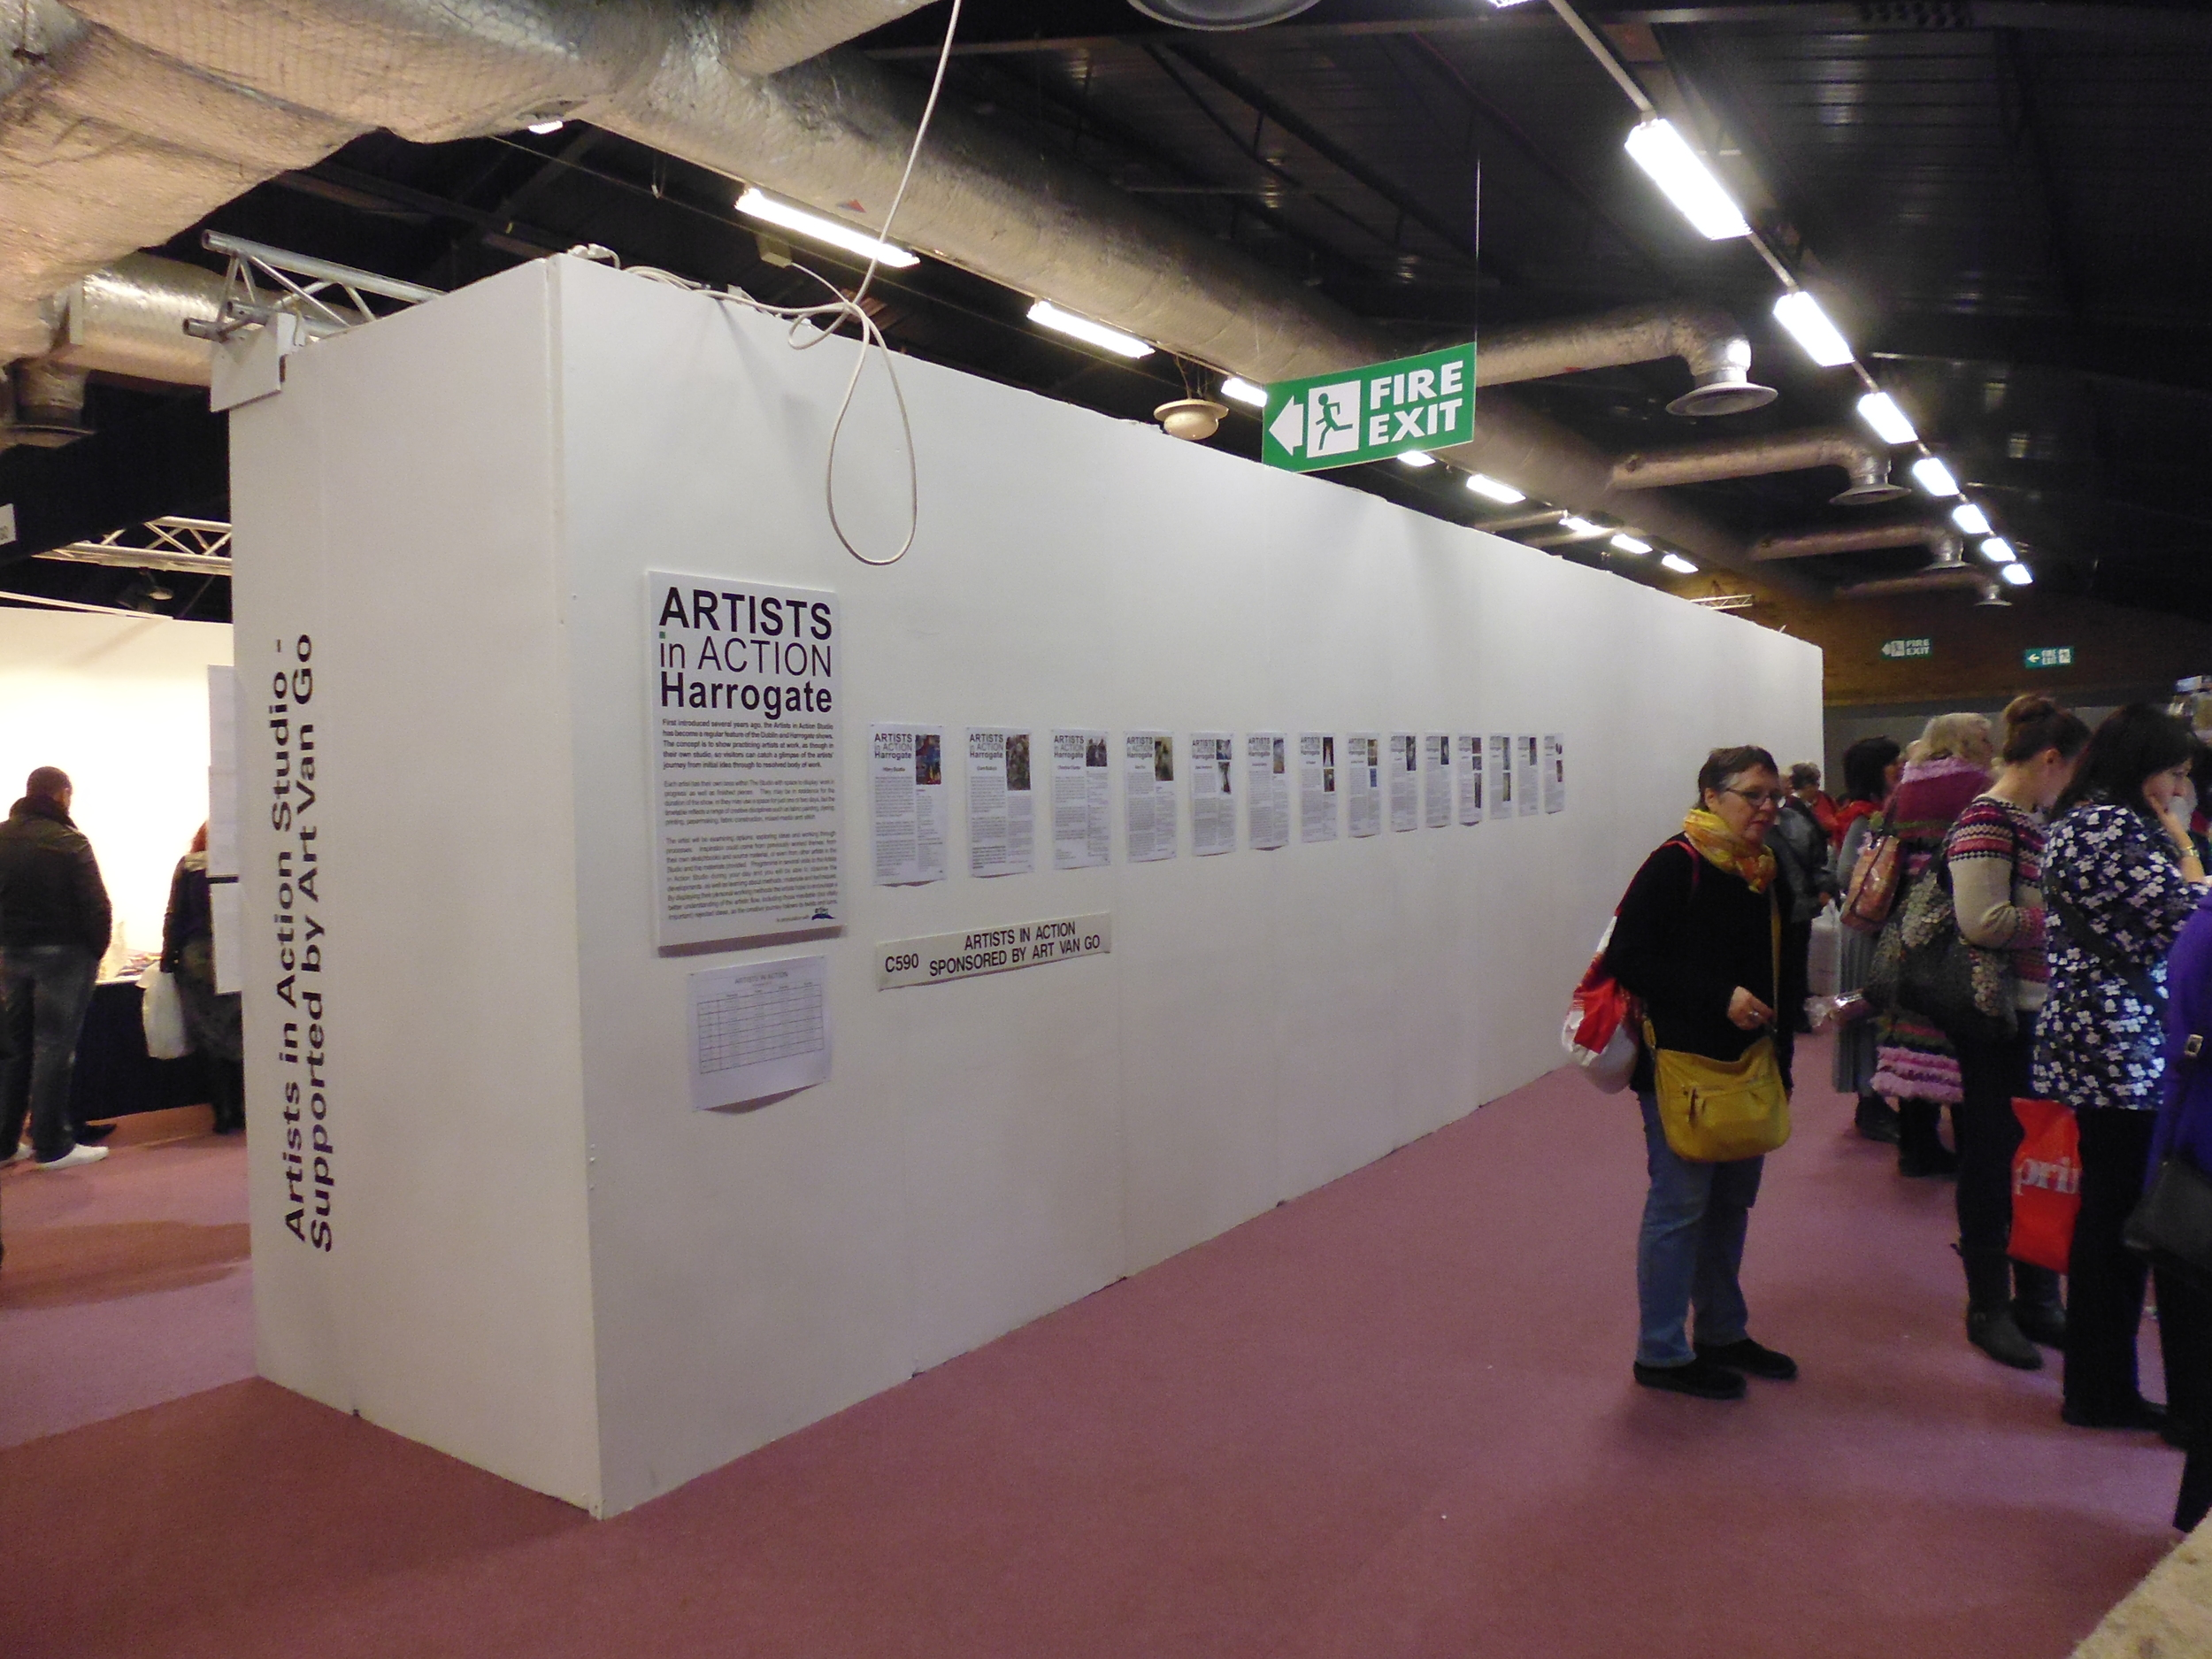 Views of the Artist in Action stand in 2013